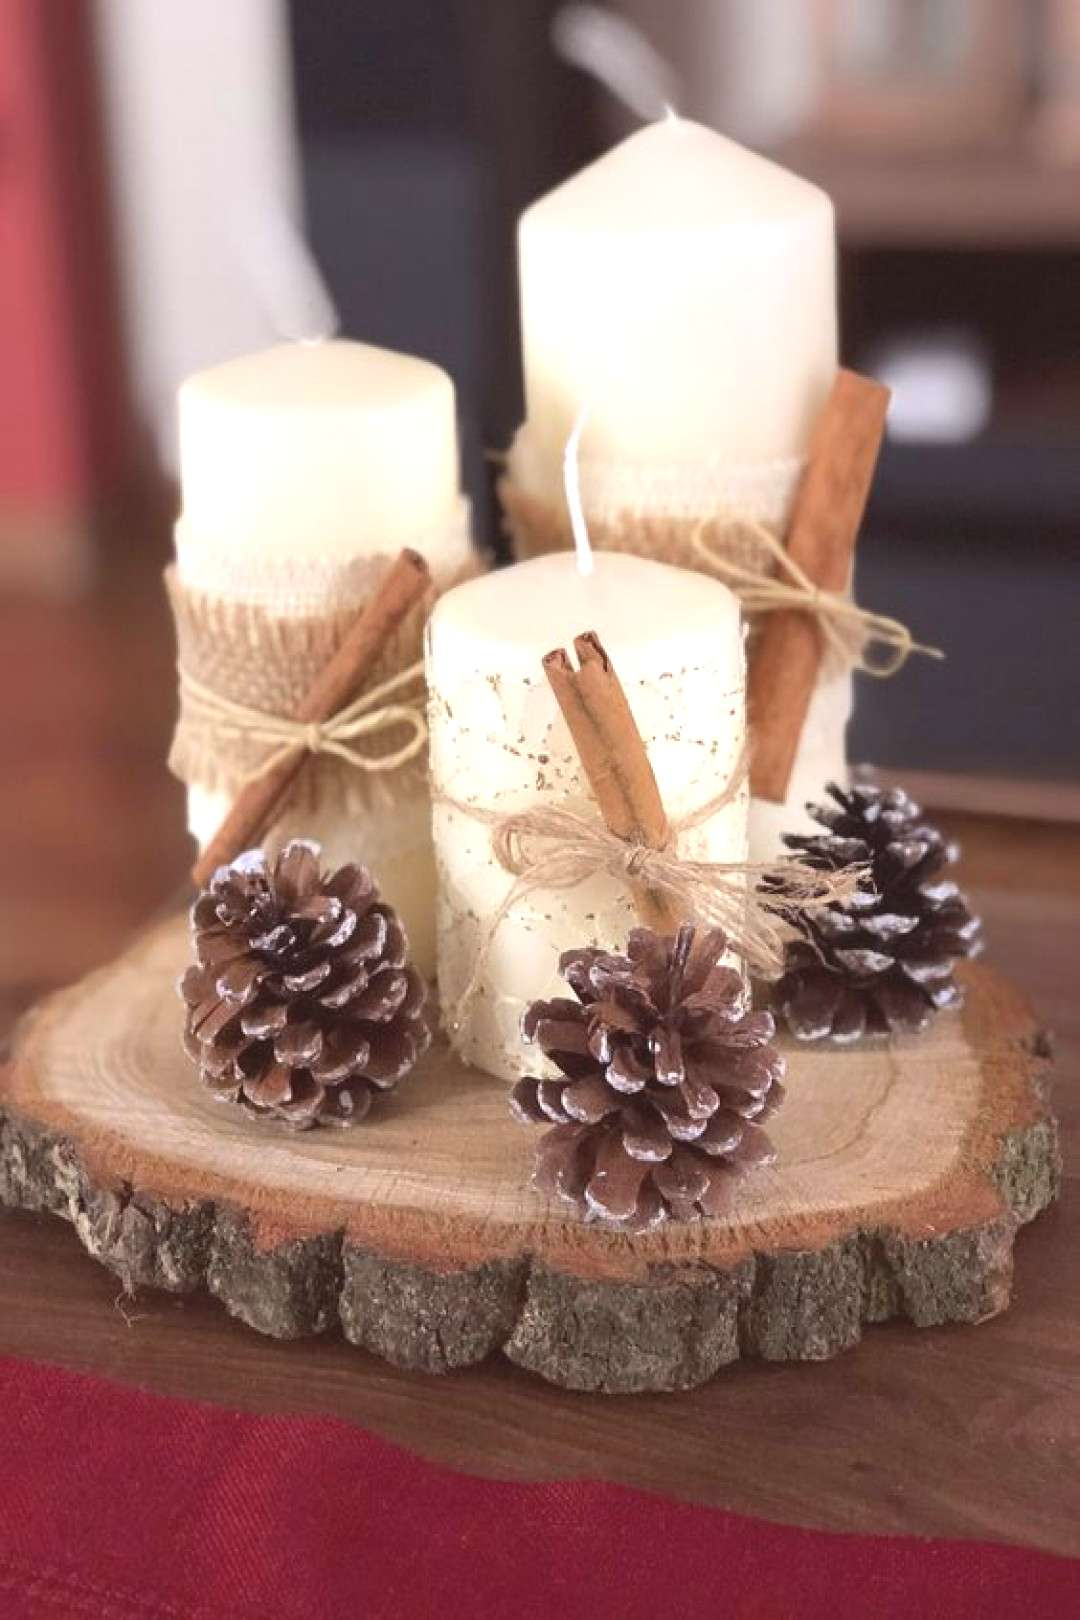 70+ Simple And Popular Christmas Decorations -